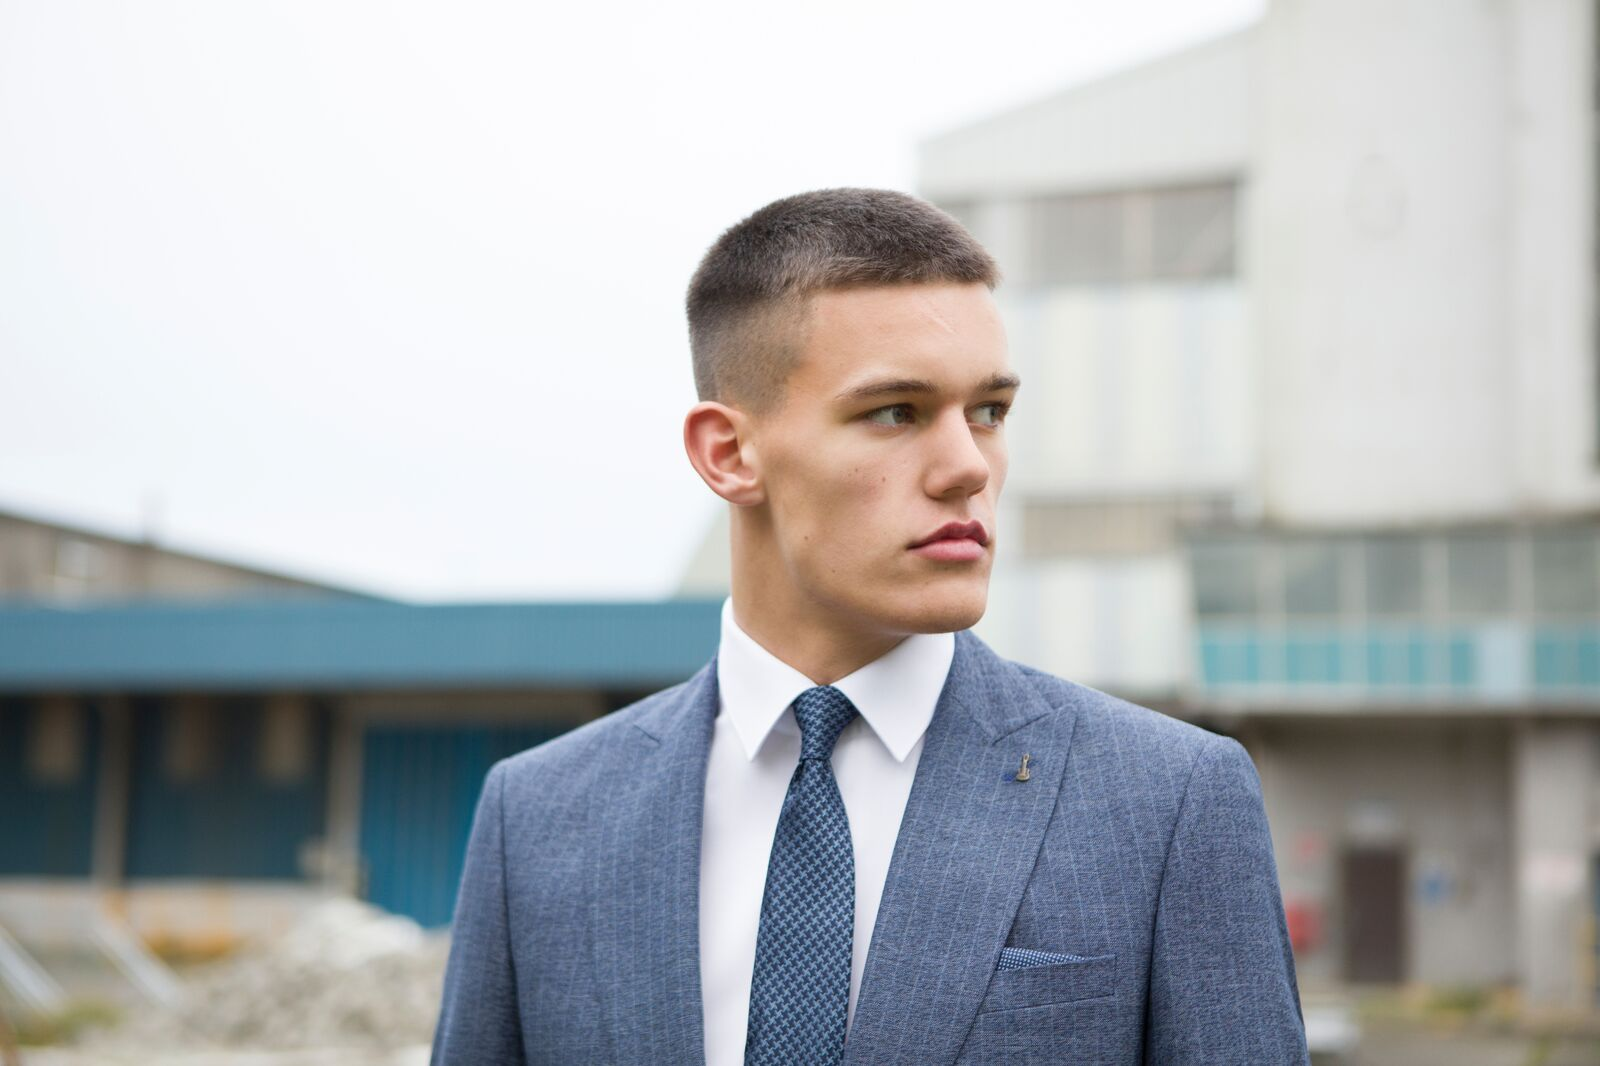 Travis Menswear Spring Summer 2018 Benetti Menswear Suit